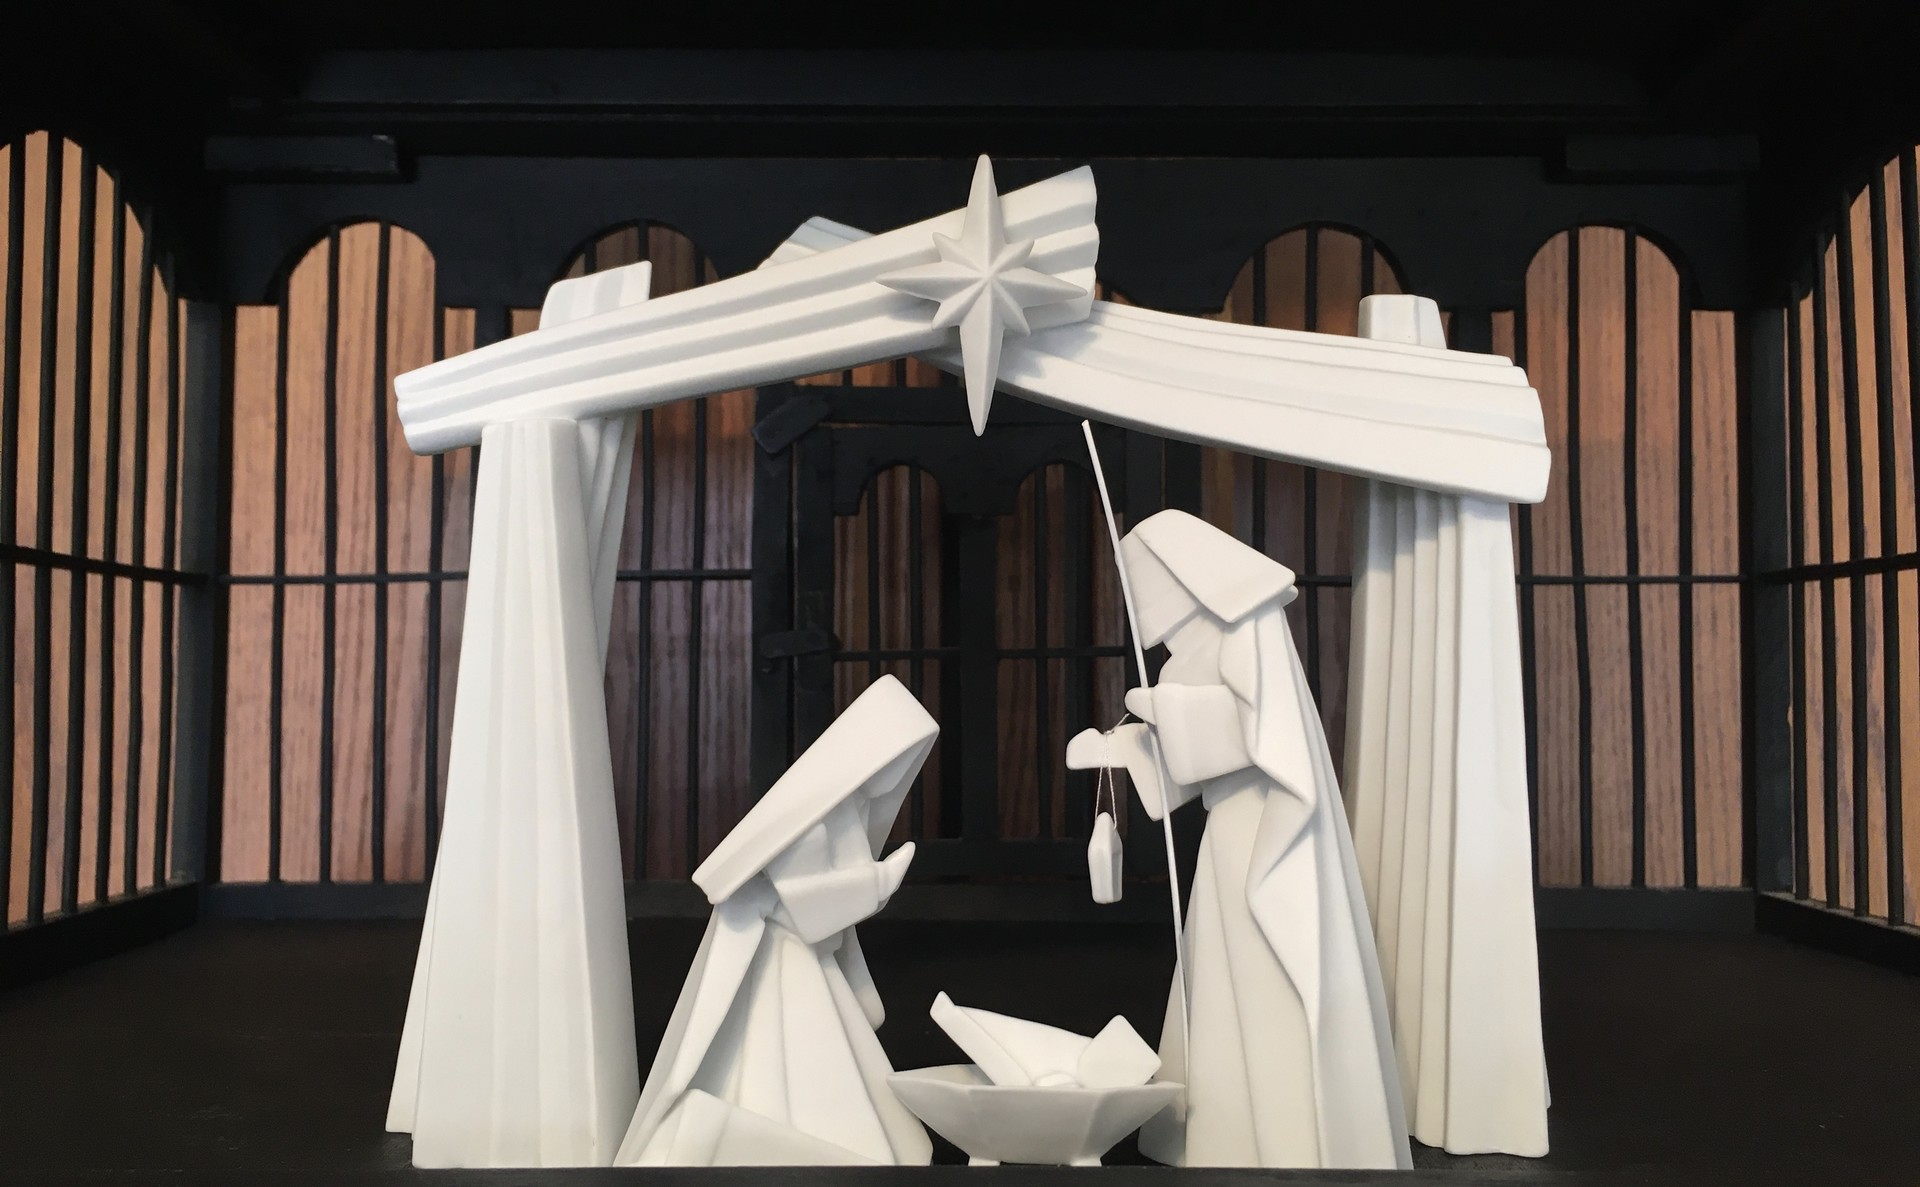 Make Like a Wise Man and Head to this Nativity Exhibit in Palo Alto